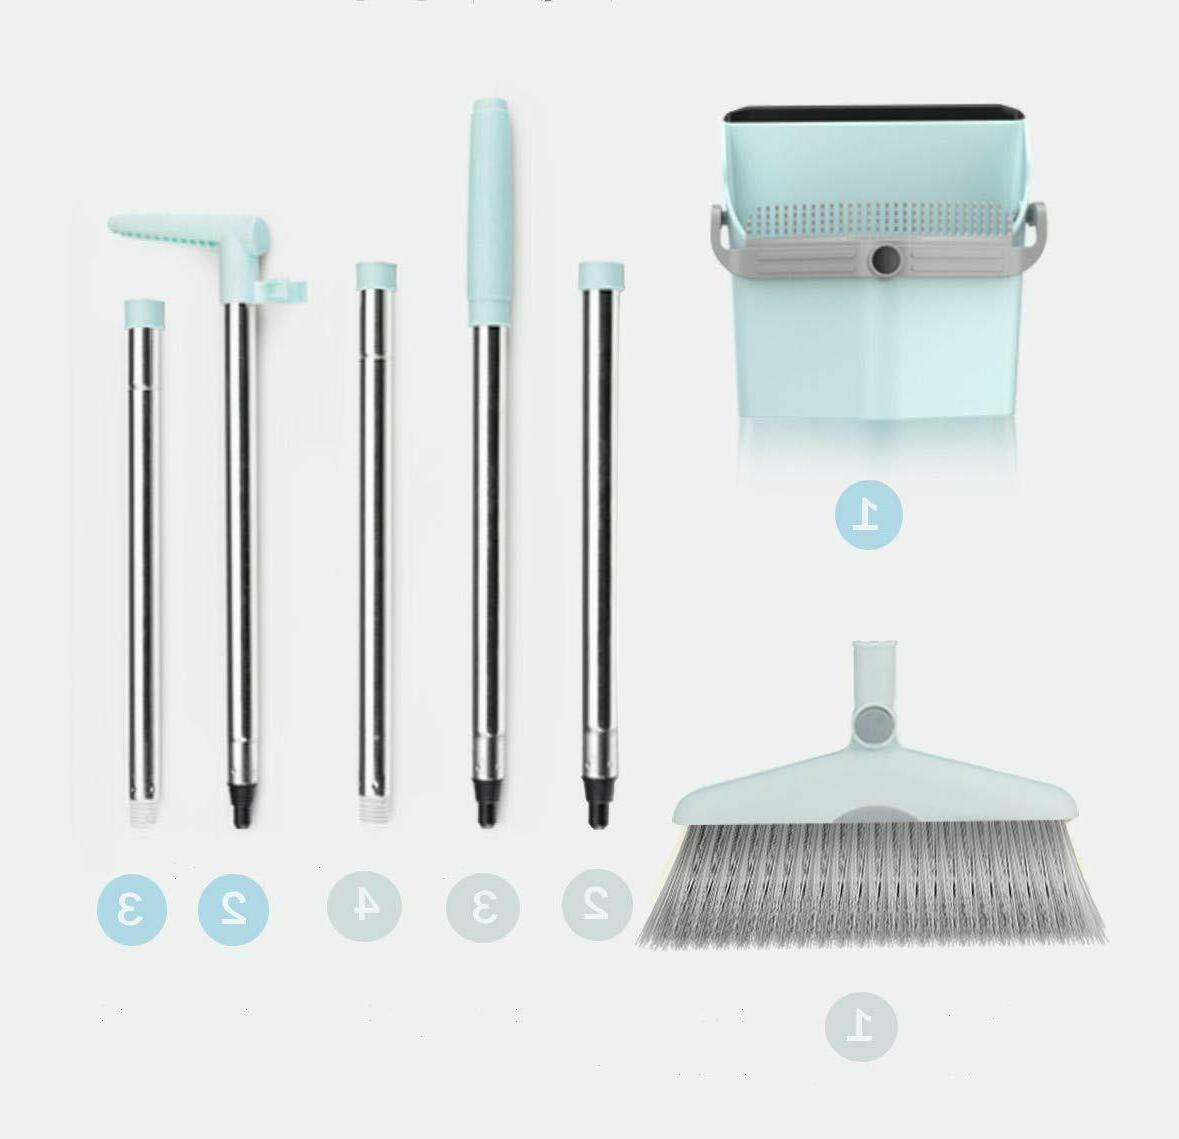 Broom Dust Set for Home Use Upright Stand Dustpan Broom